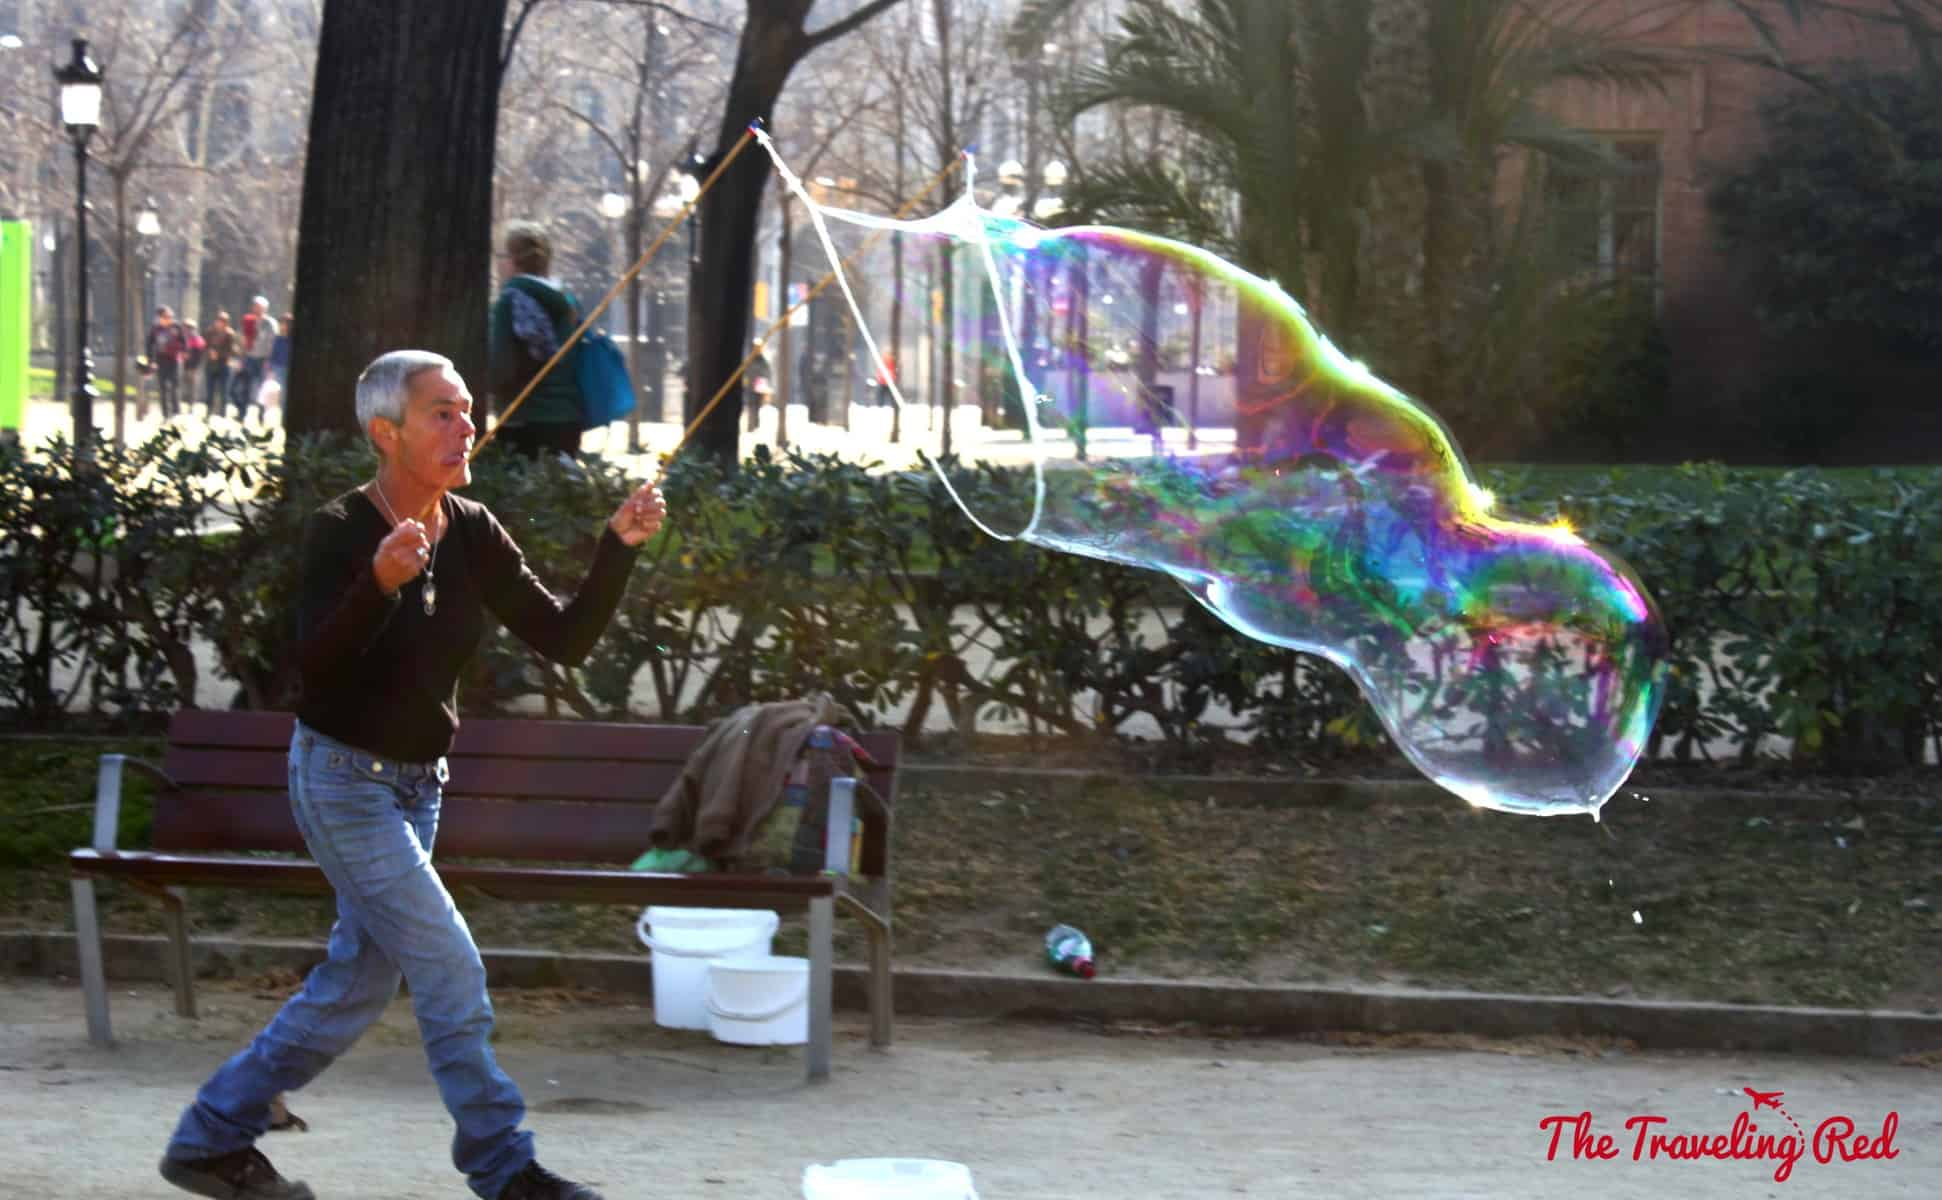 Giant bubbles in Parc Ciutadella in Barcelona, Spain